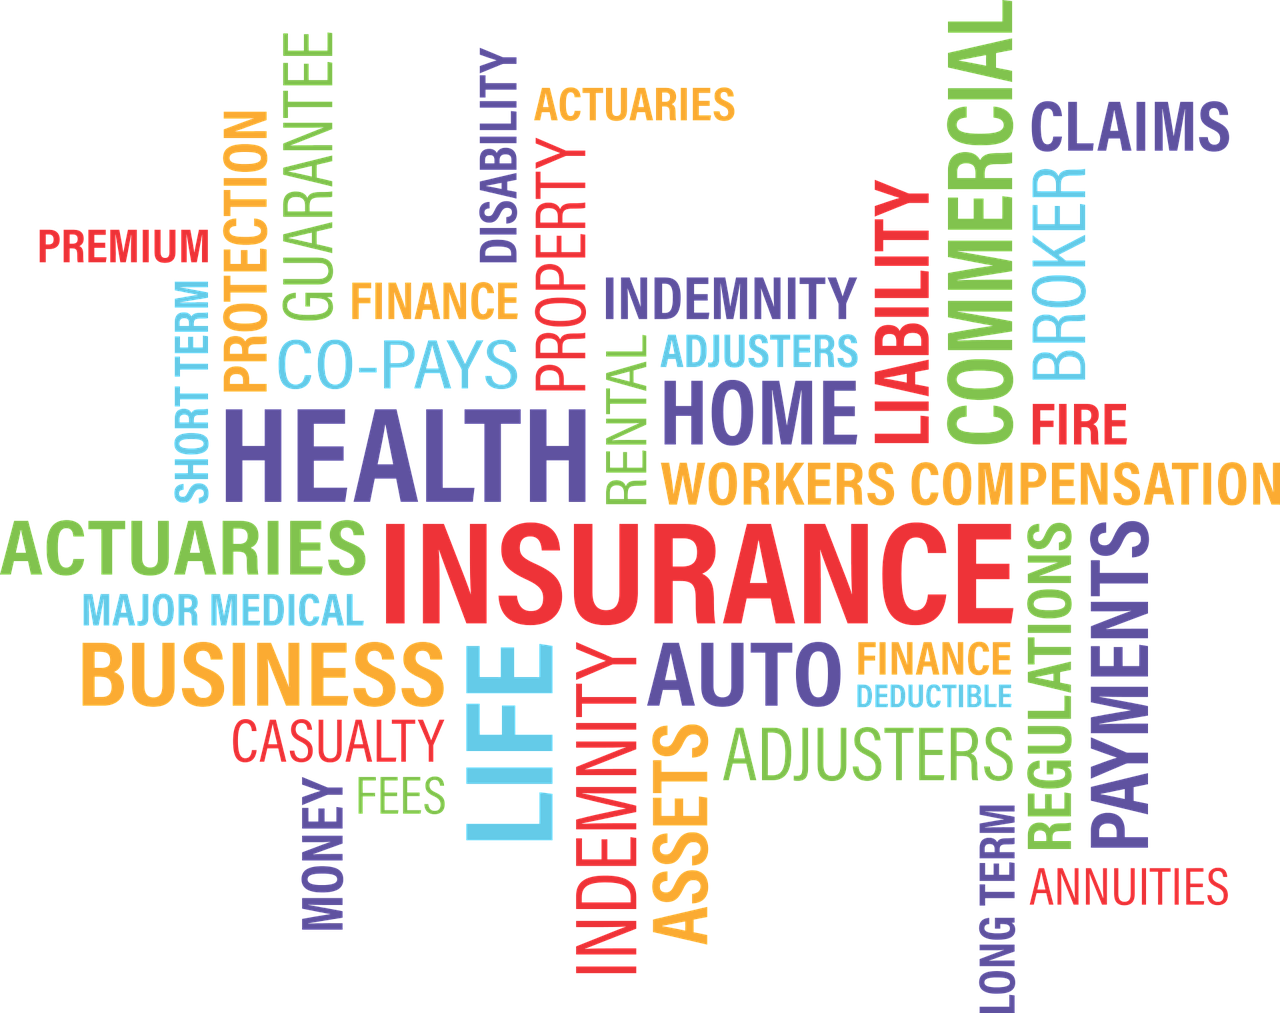 Small Business Insurance Business Insurance Life Insurance Policy Medical Insurance